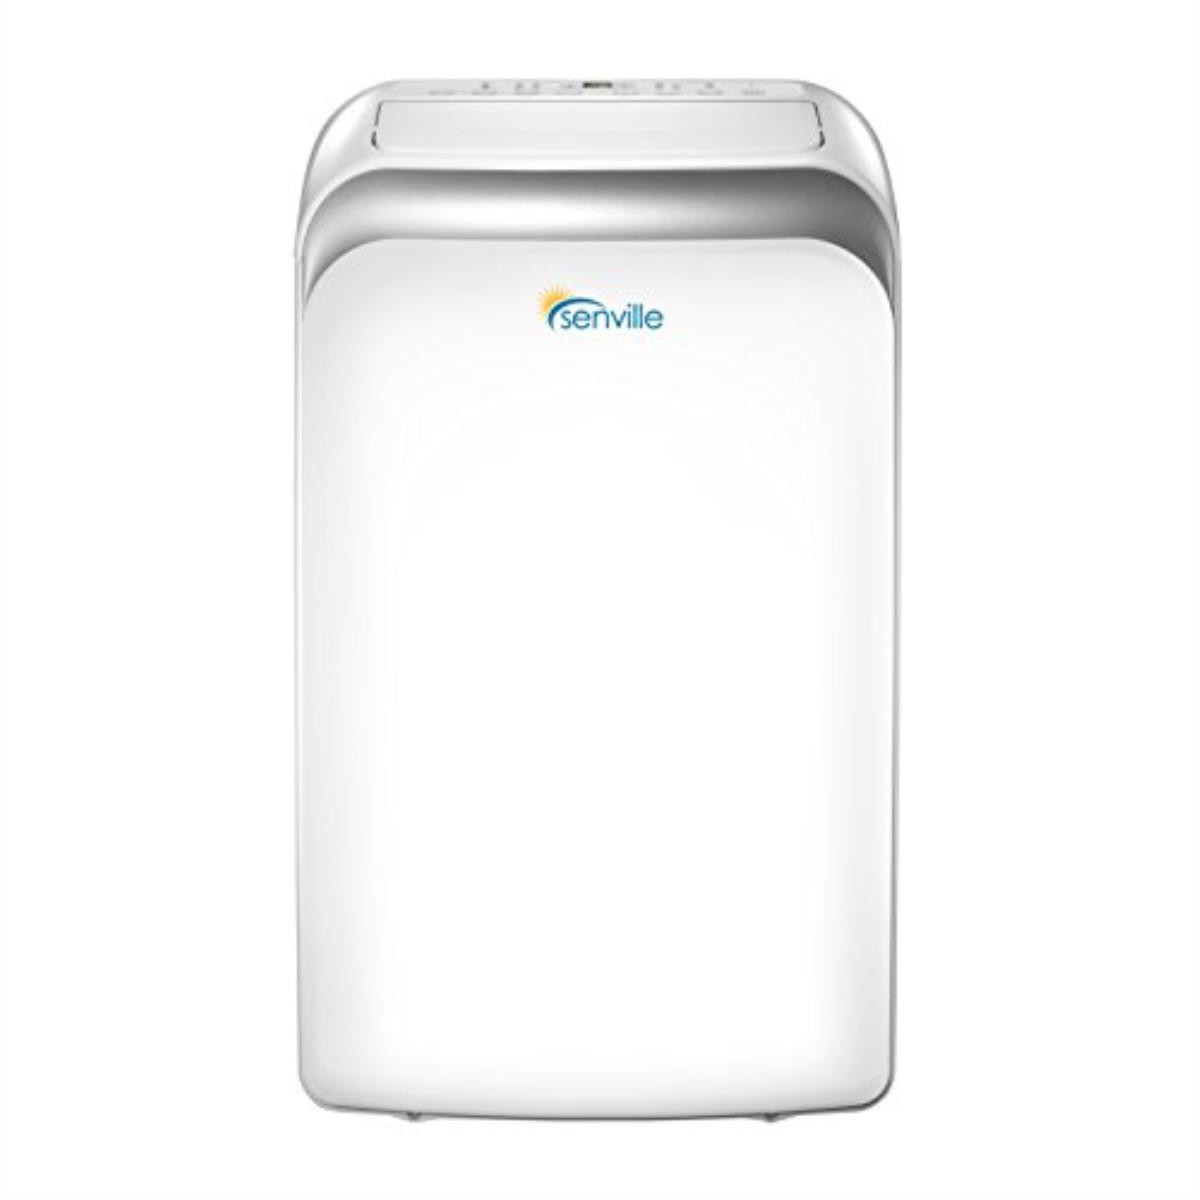 Home Portable AC 14000 BTU Portable Air Conditioner By Senville #C38608